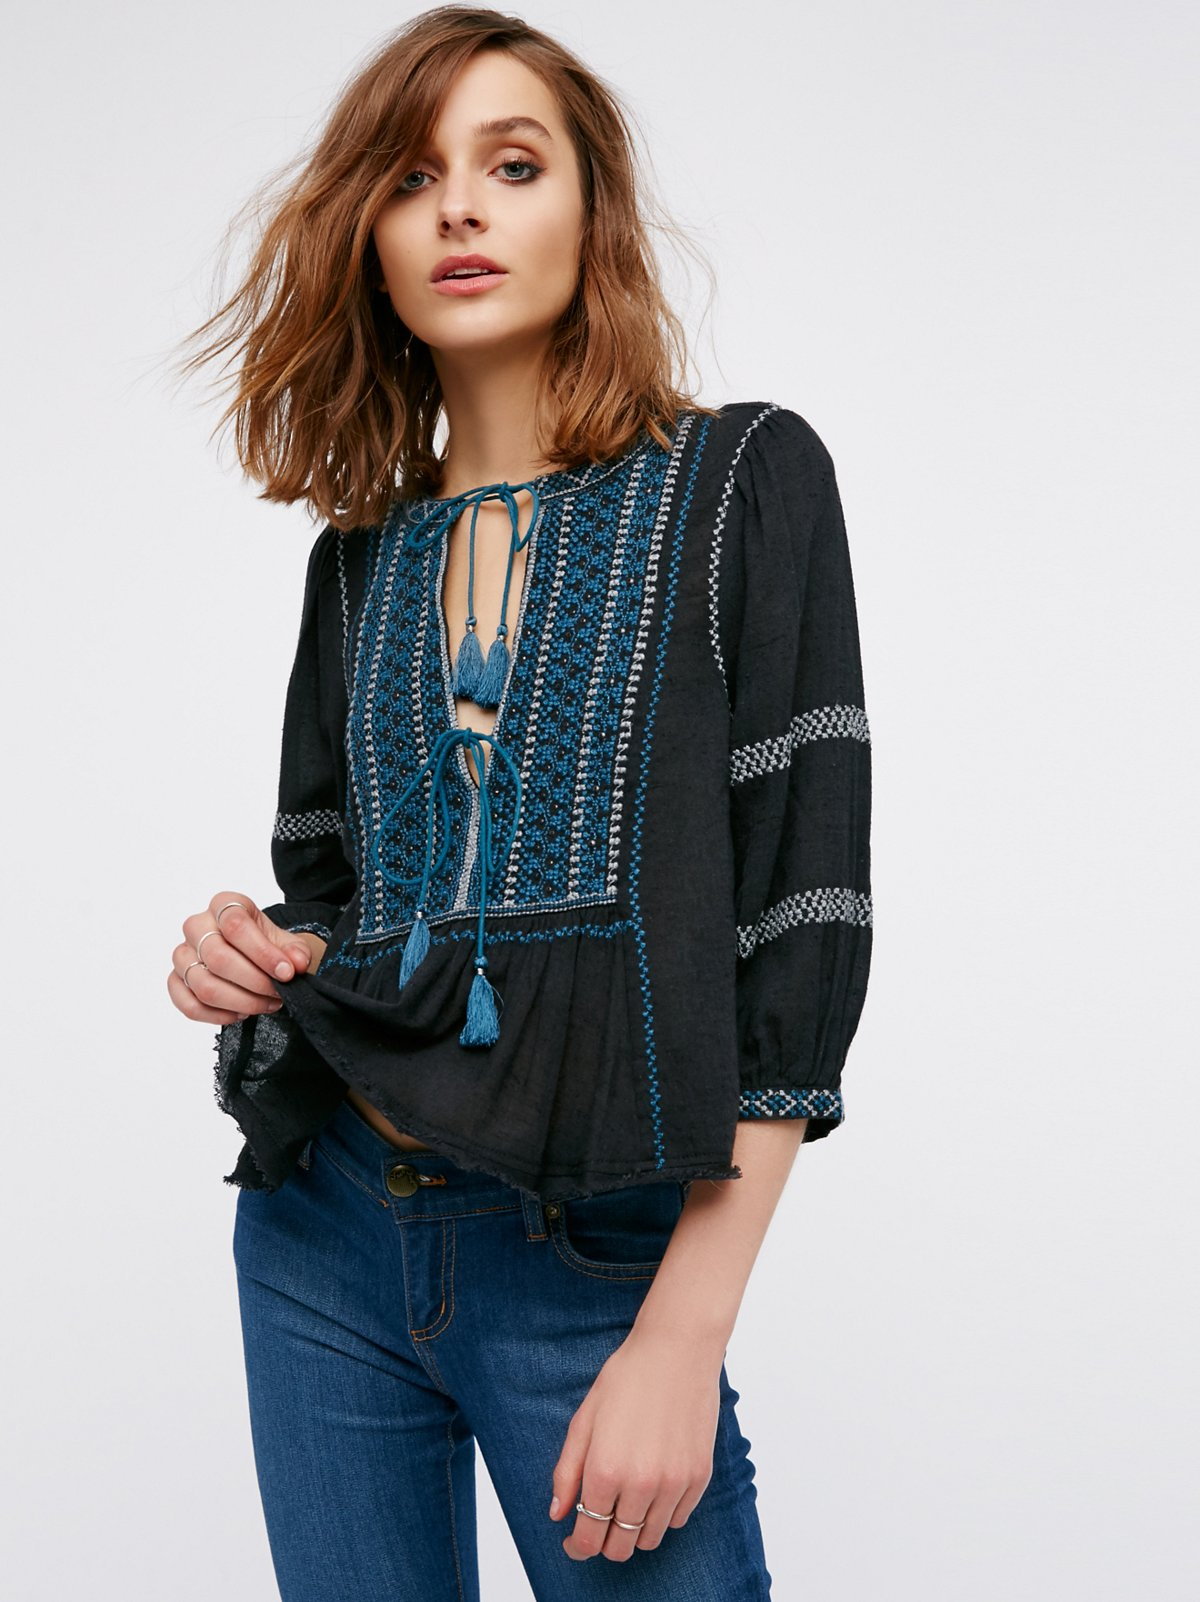 Wild Life Embroidered Top